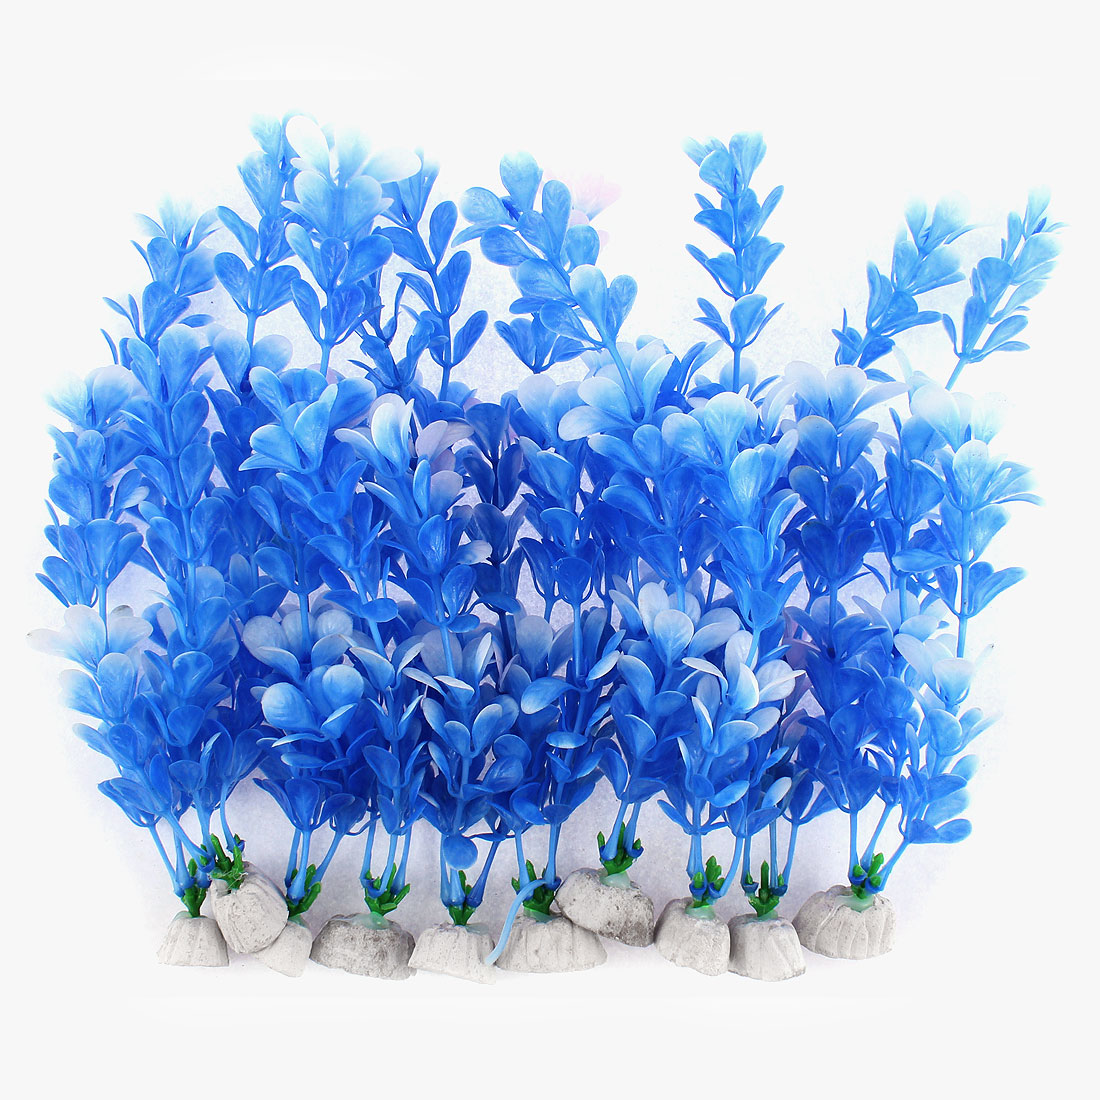 Aquarium Plastic Emulational Water Plant Grass Landscaping Blue 10 Pcs